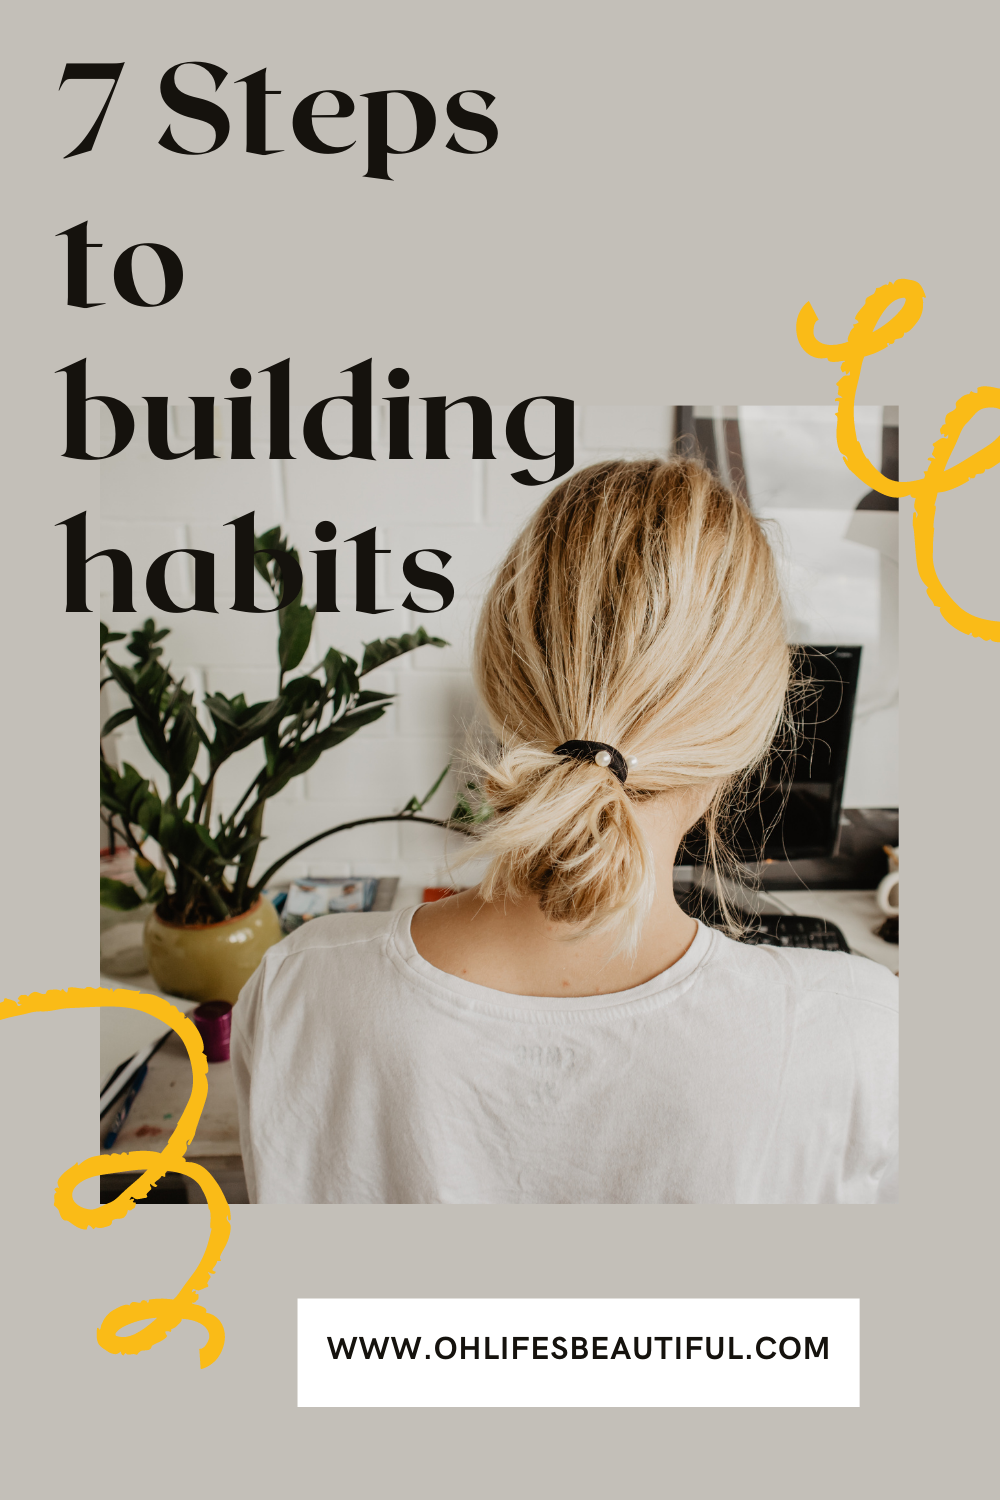 7 steps to building habits